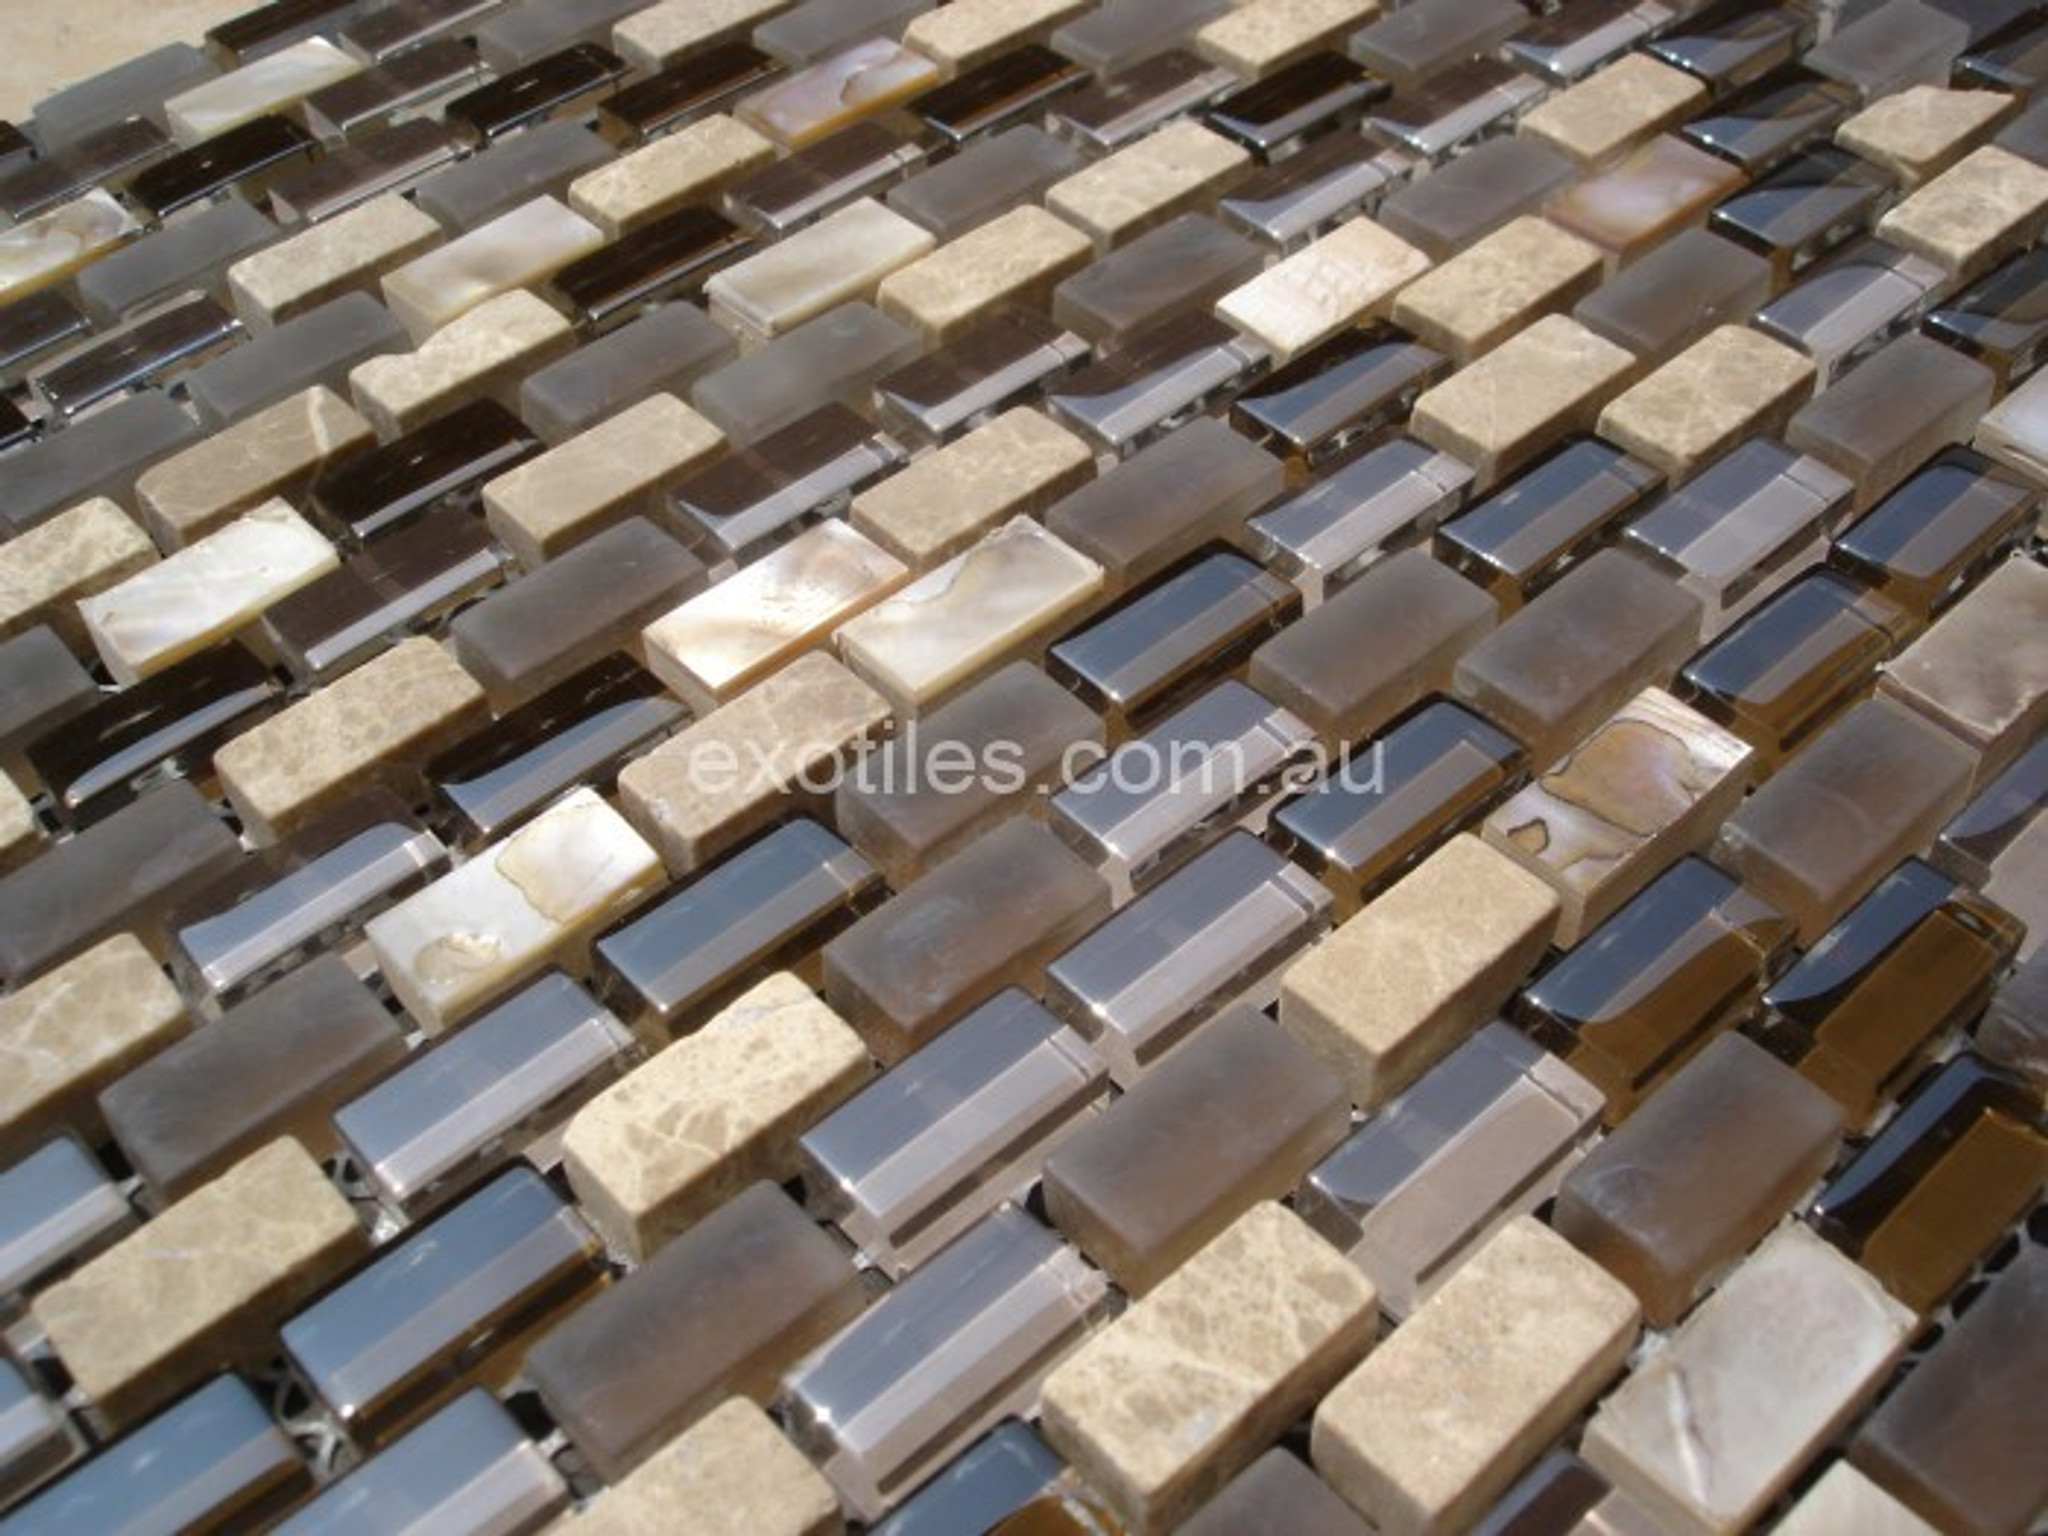 Mother Of Pearl Shell Mosaic Tiles